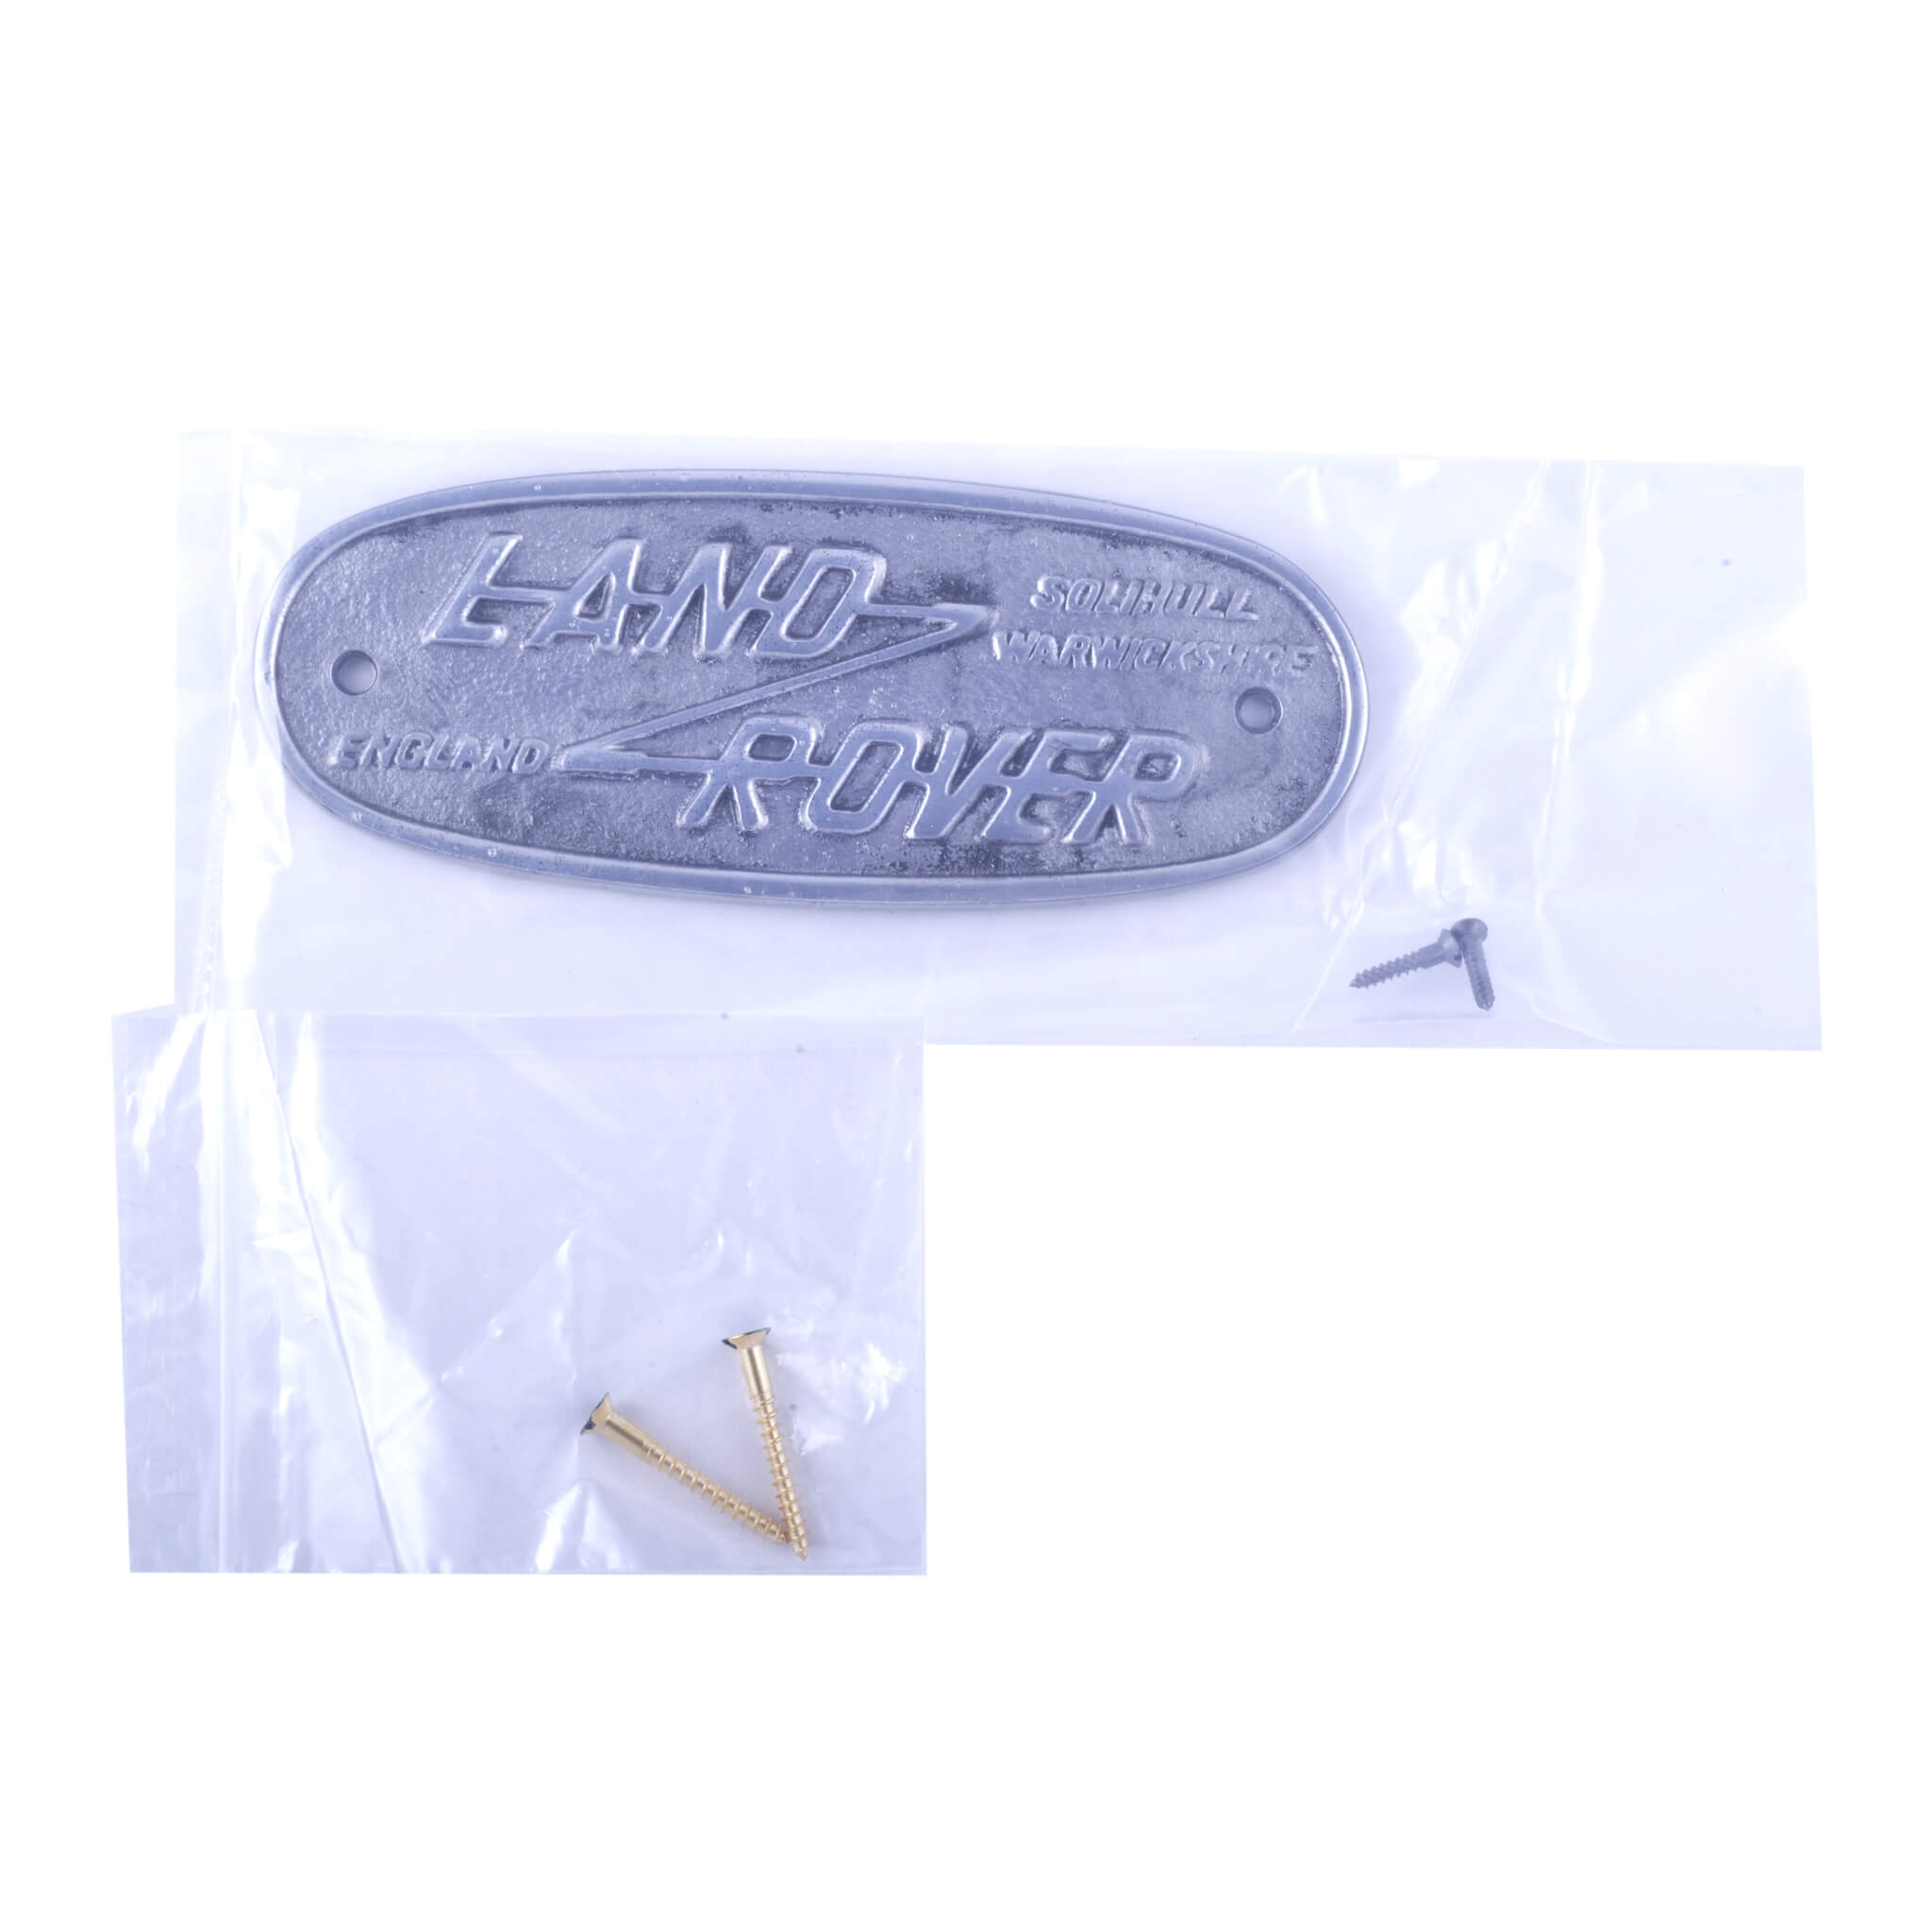 Land Rover Solihull Badge Accessory